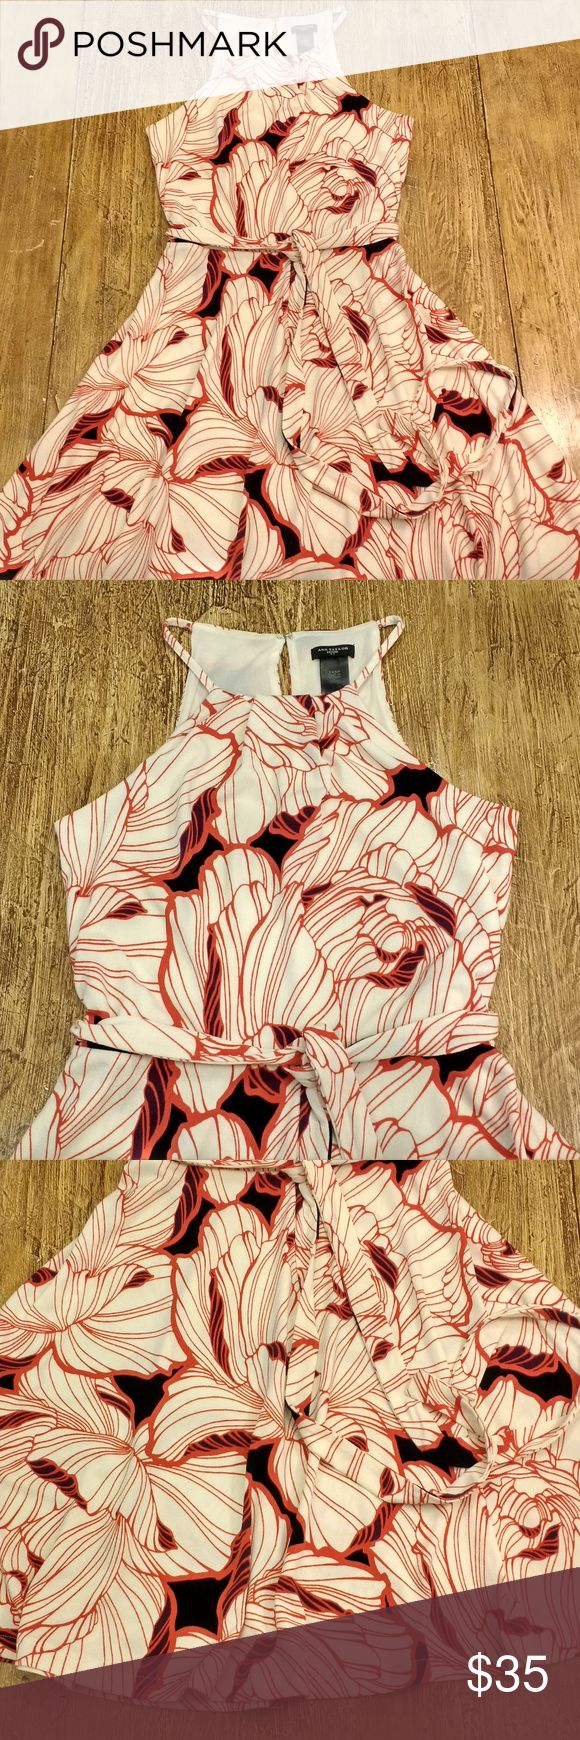 Ann Taylor Petite High Neck Halter Dress Floral This is a gorgeous Ann Taylor Petite women's high neck halter sleeveless dress in excellent used condition. Gorgeous orange cream and black floral print. Belt ties at the waist. Unlined except at the bust. Size XXSP. Overall in excellent condition perfect for the workplace or any occasion!  Measurements: Underarm to Underarm: 14.5 in. Full Length: 33 in. Waist: 28 in. Hips: 56 in. (full flared skirt) Ann Taylor Dresses